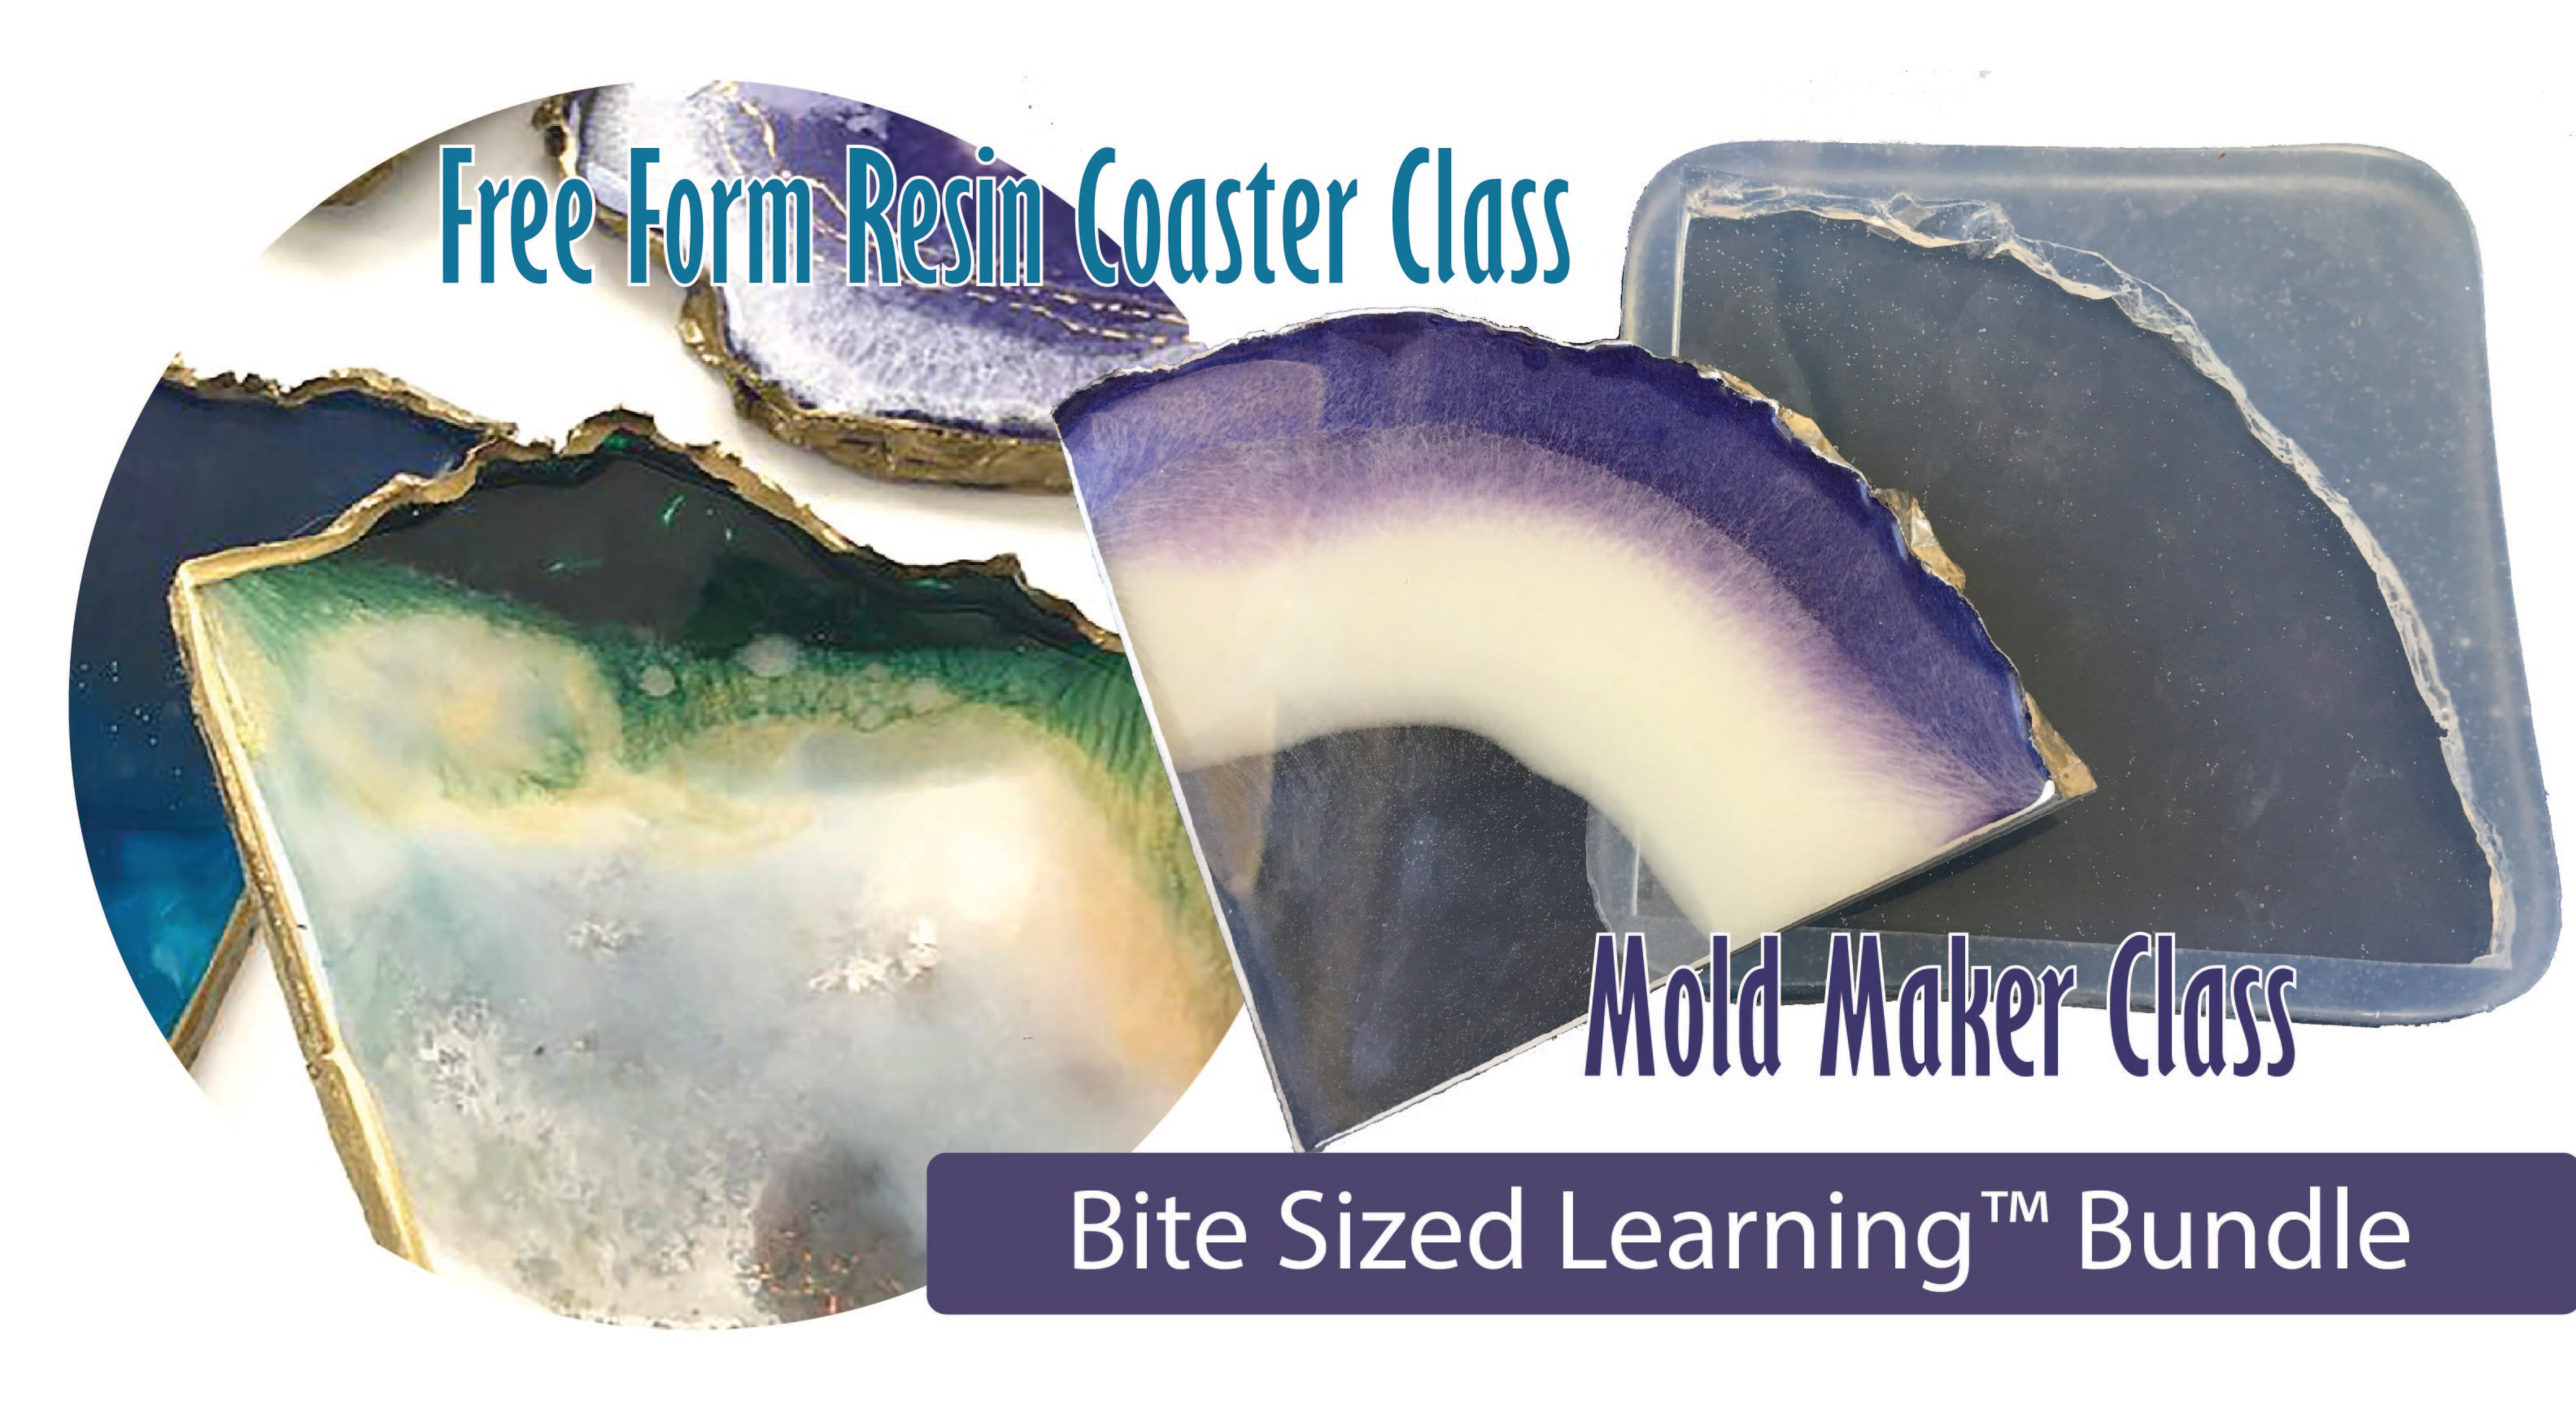 Free Form Coaster & Mold Maker Class Pack